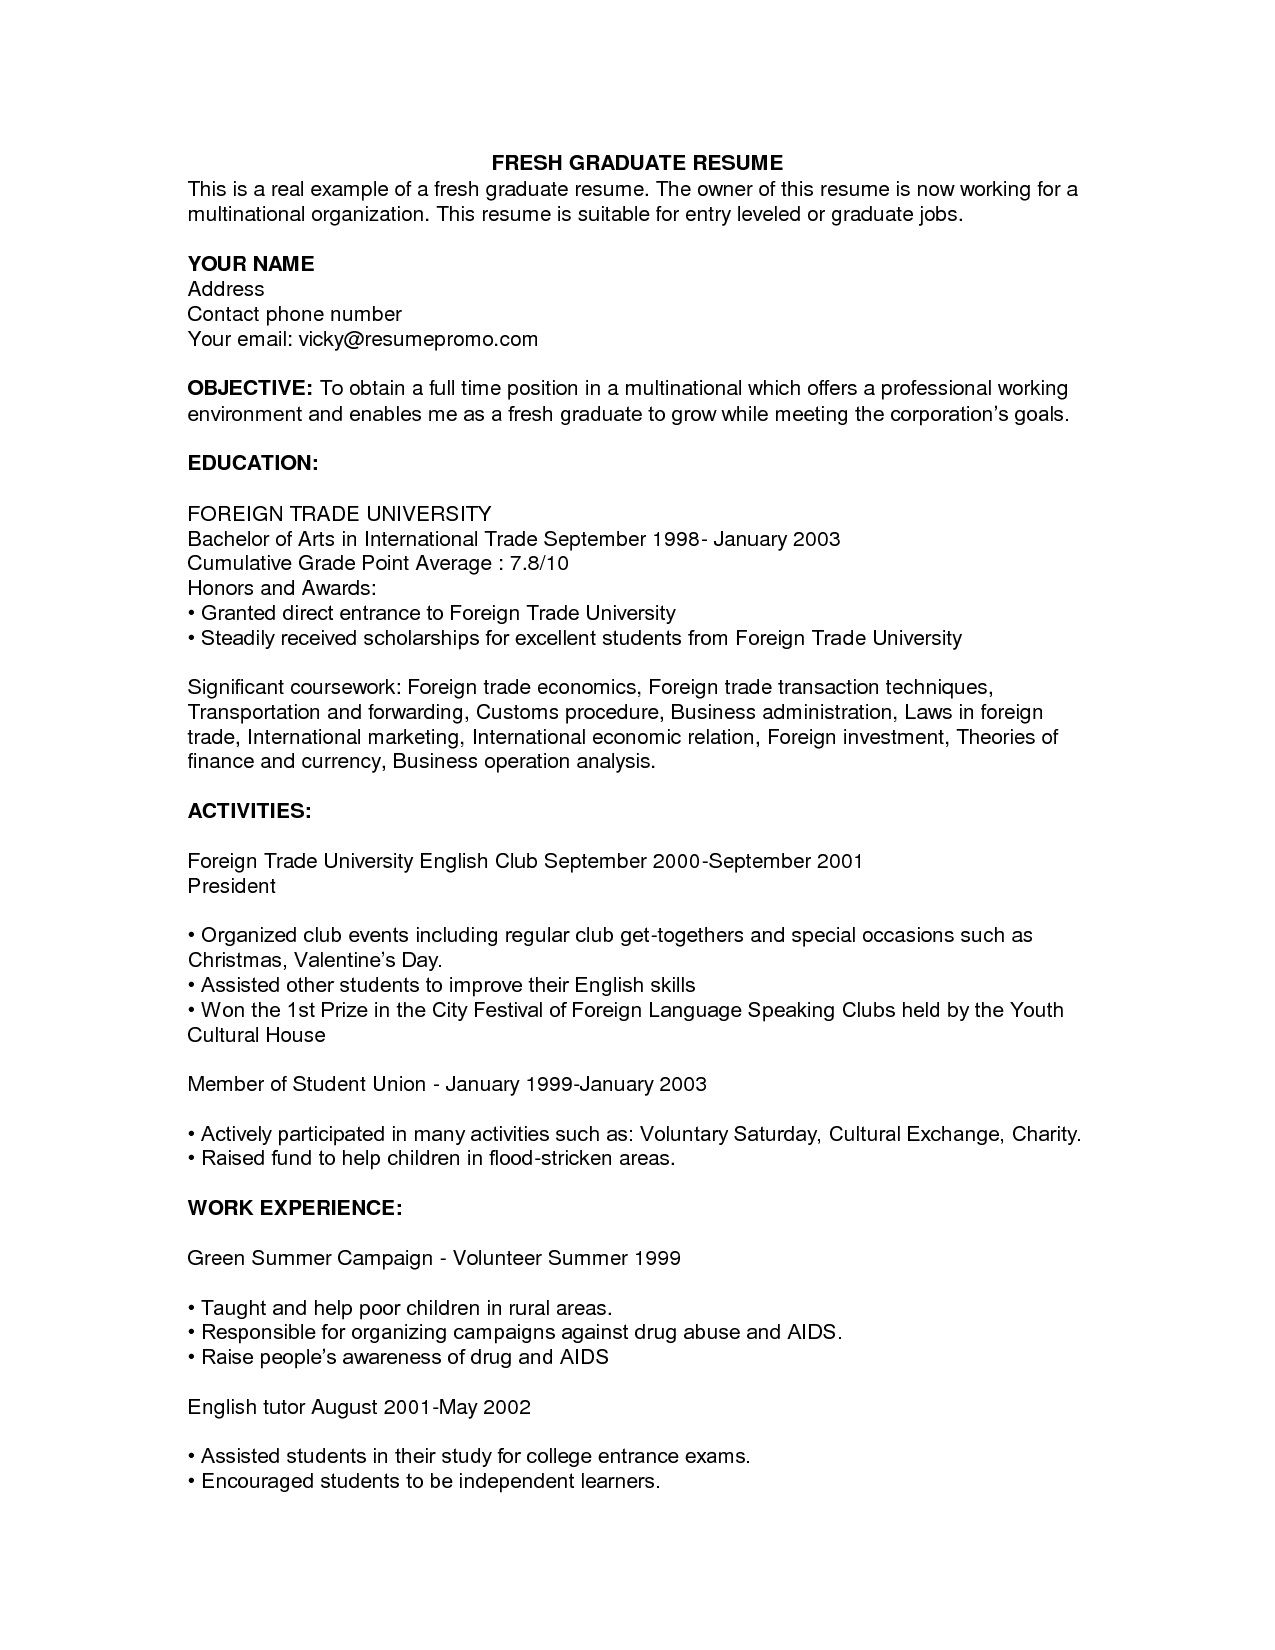 example of resume for fresh graduate jobresumesample com example of resume for fresh graduate jobresumesample com 249